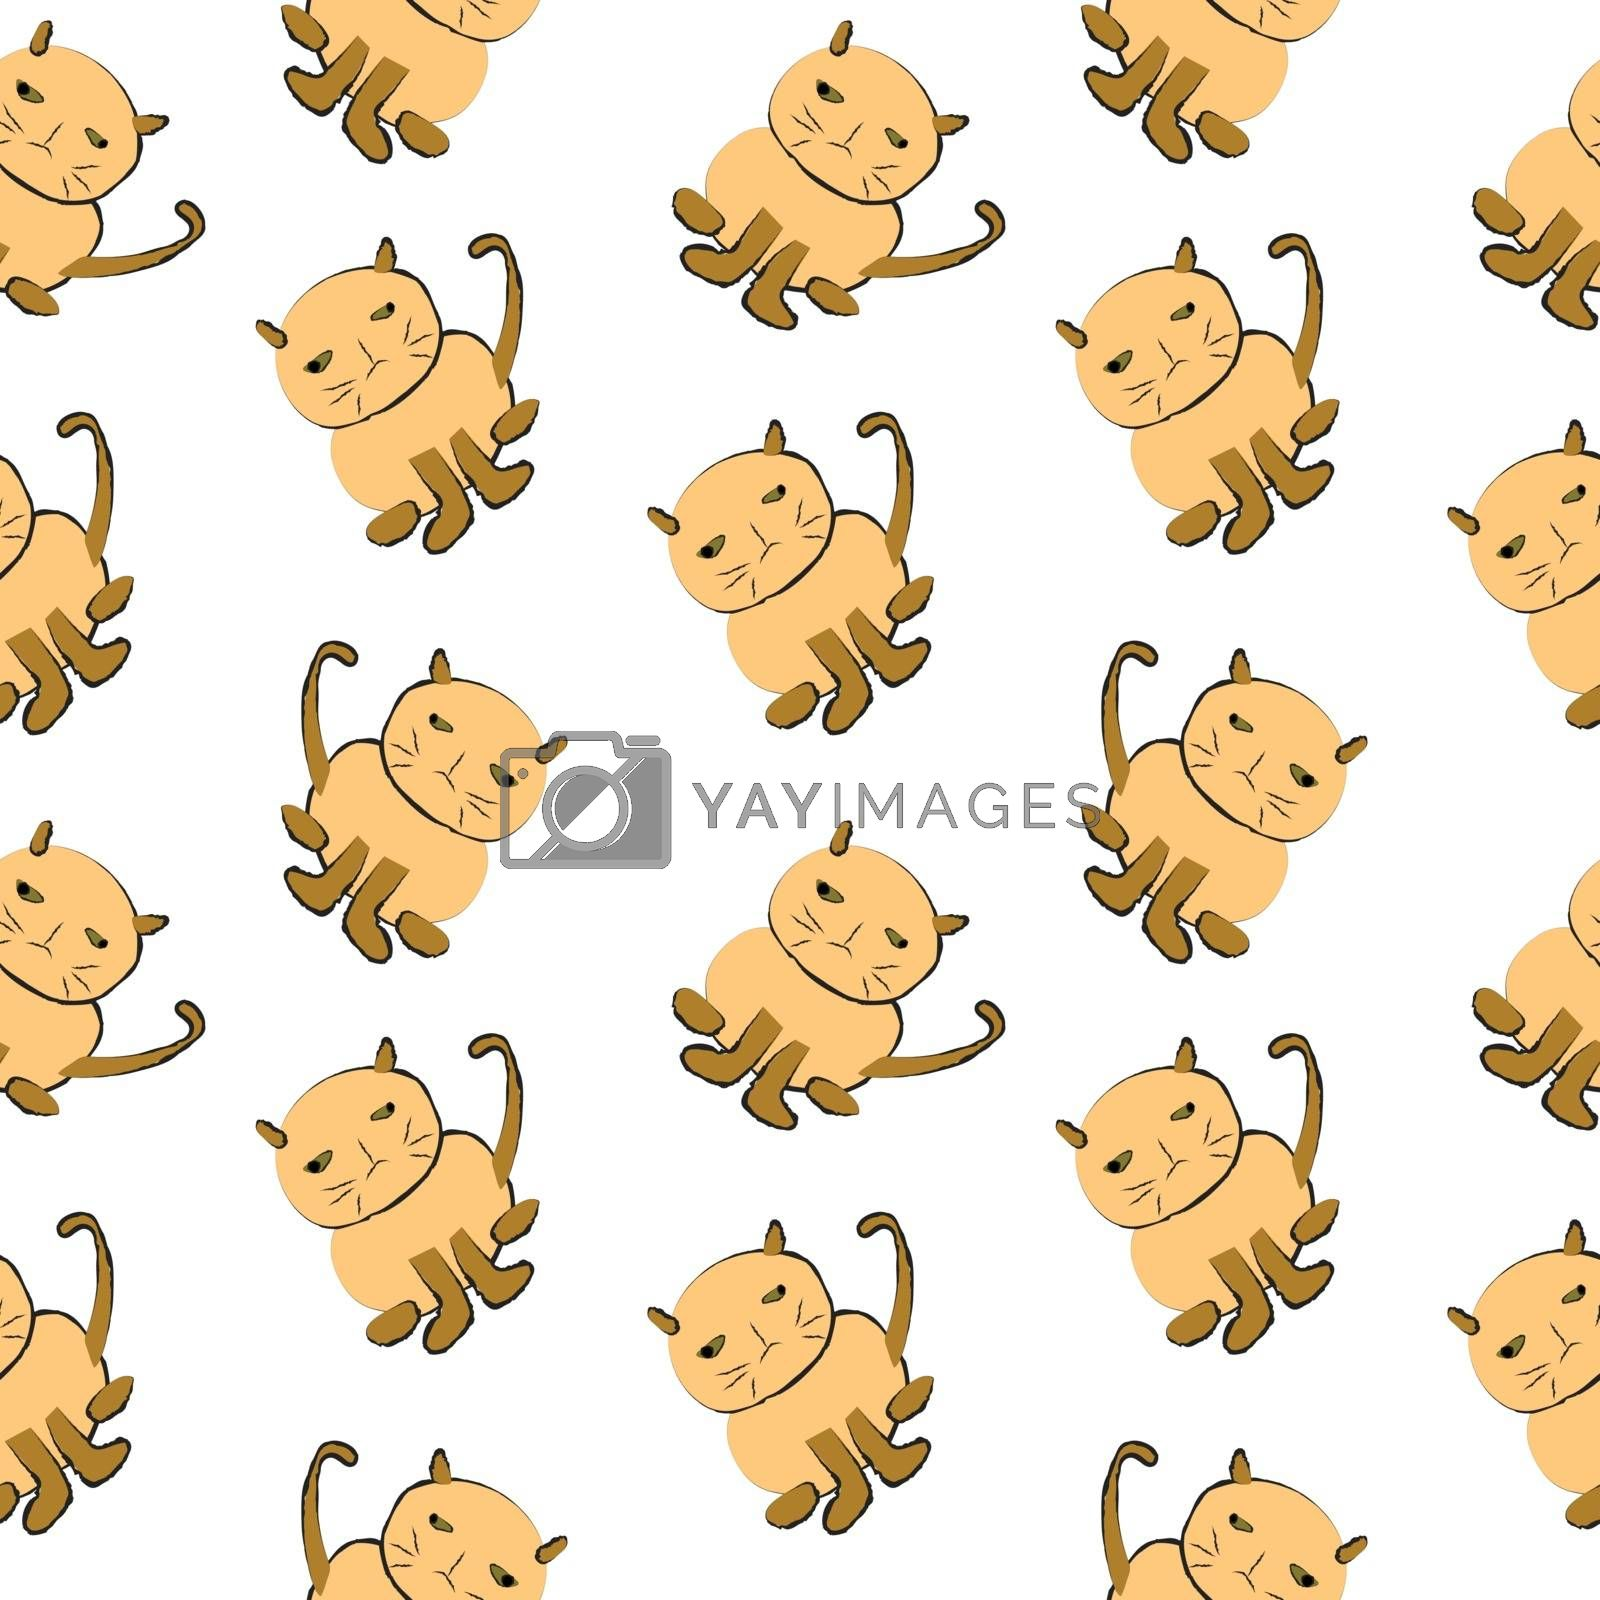 Cats drawing with ink on white background, summer seamless pattern background